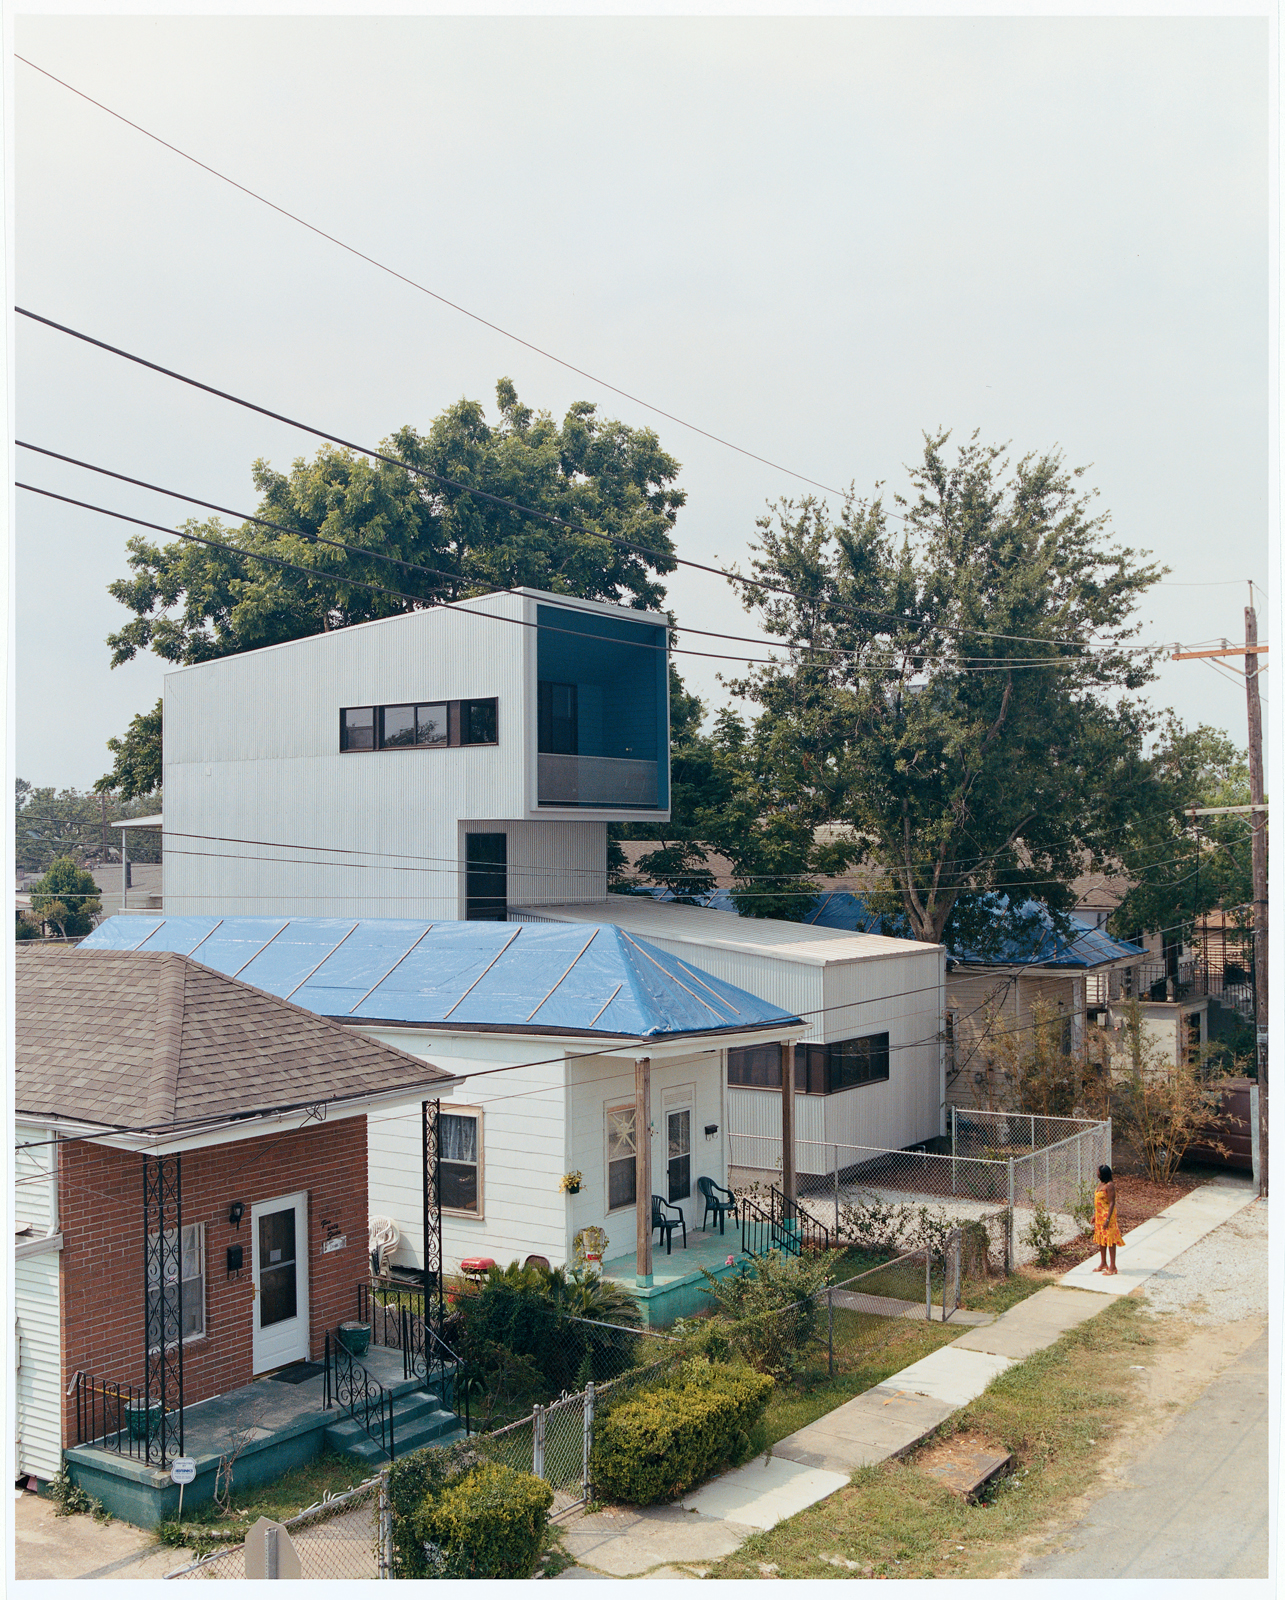 Bild Design introduced the new structure seamlessly with the help of builders A.J. Christiana Construction. Ms. Doris, whose tarp-clad house to the left lost much of its roof when Hurricane Katrina struck, checks out her new neighbor.